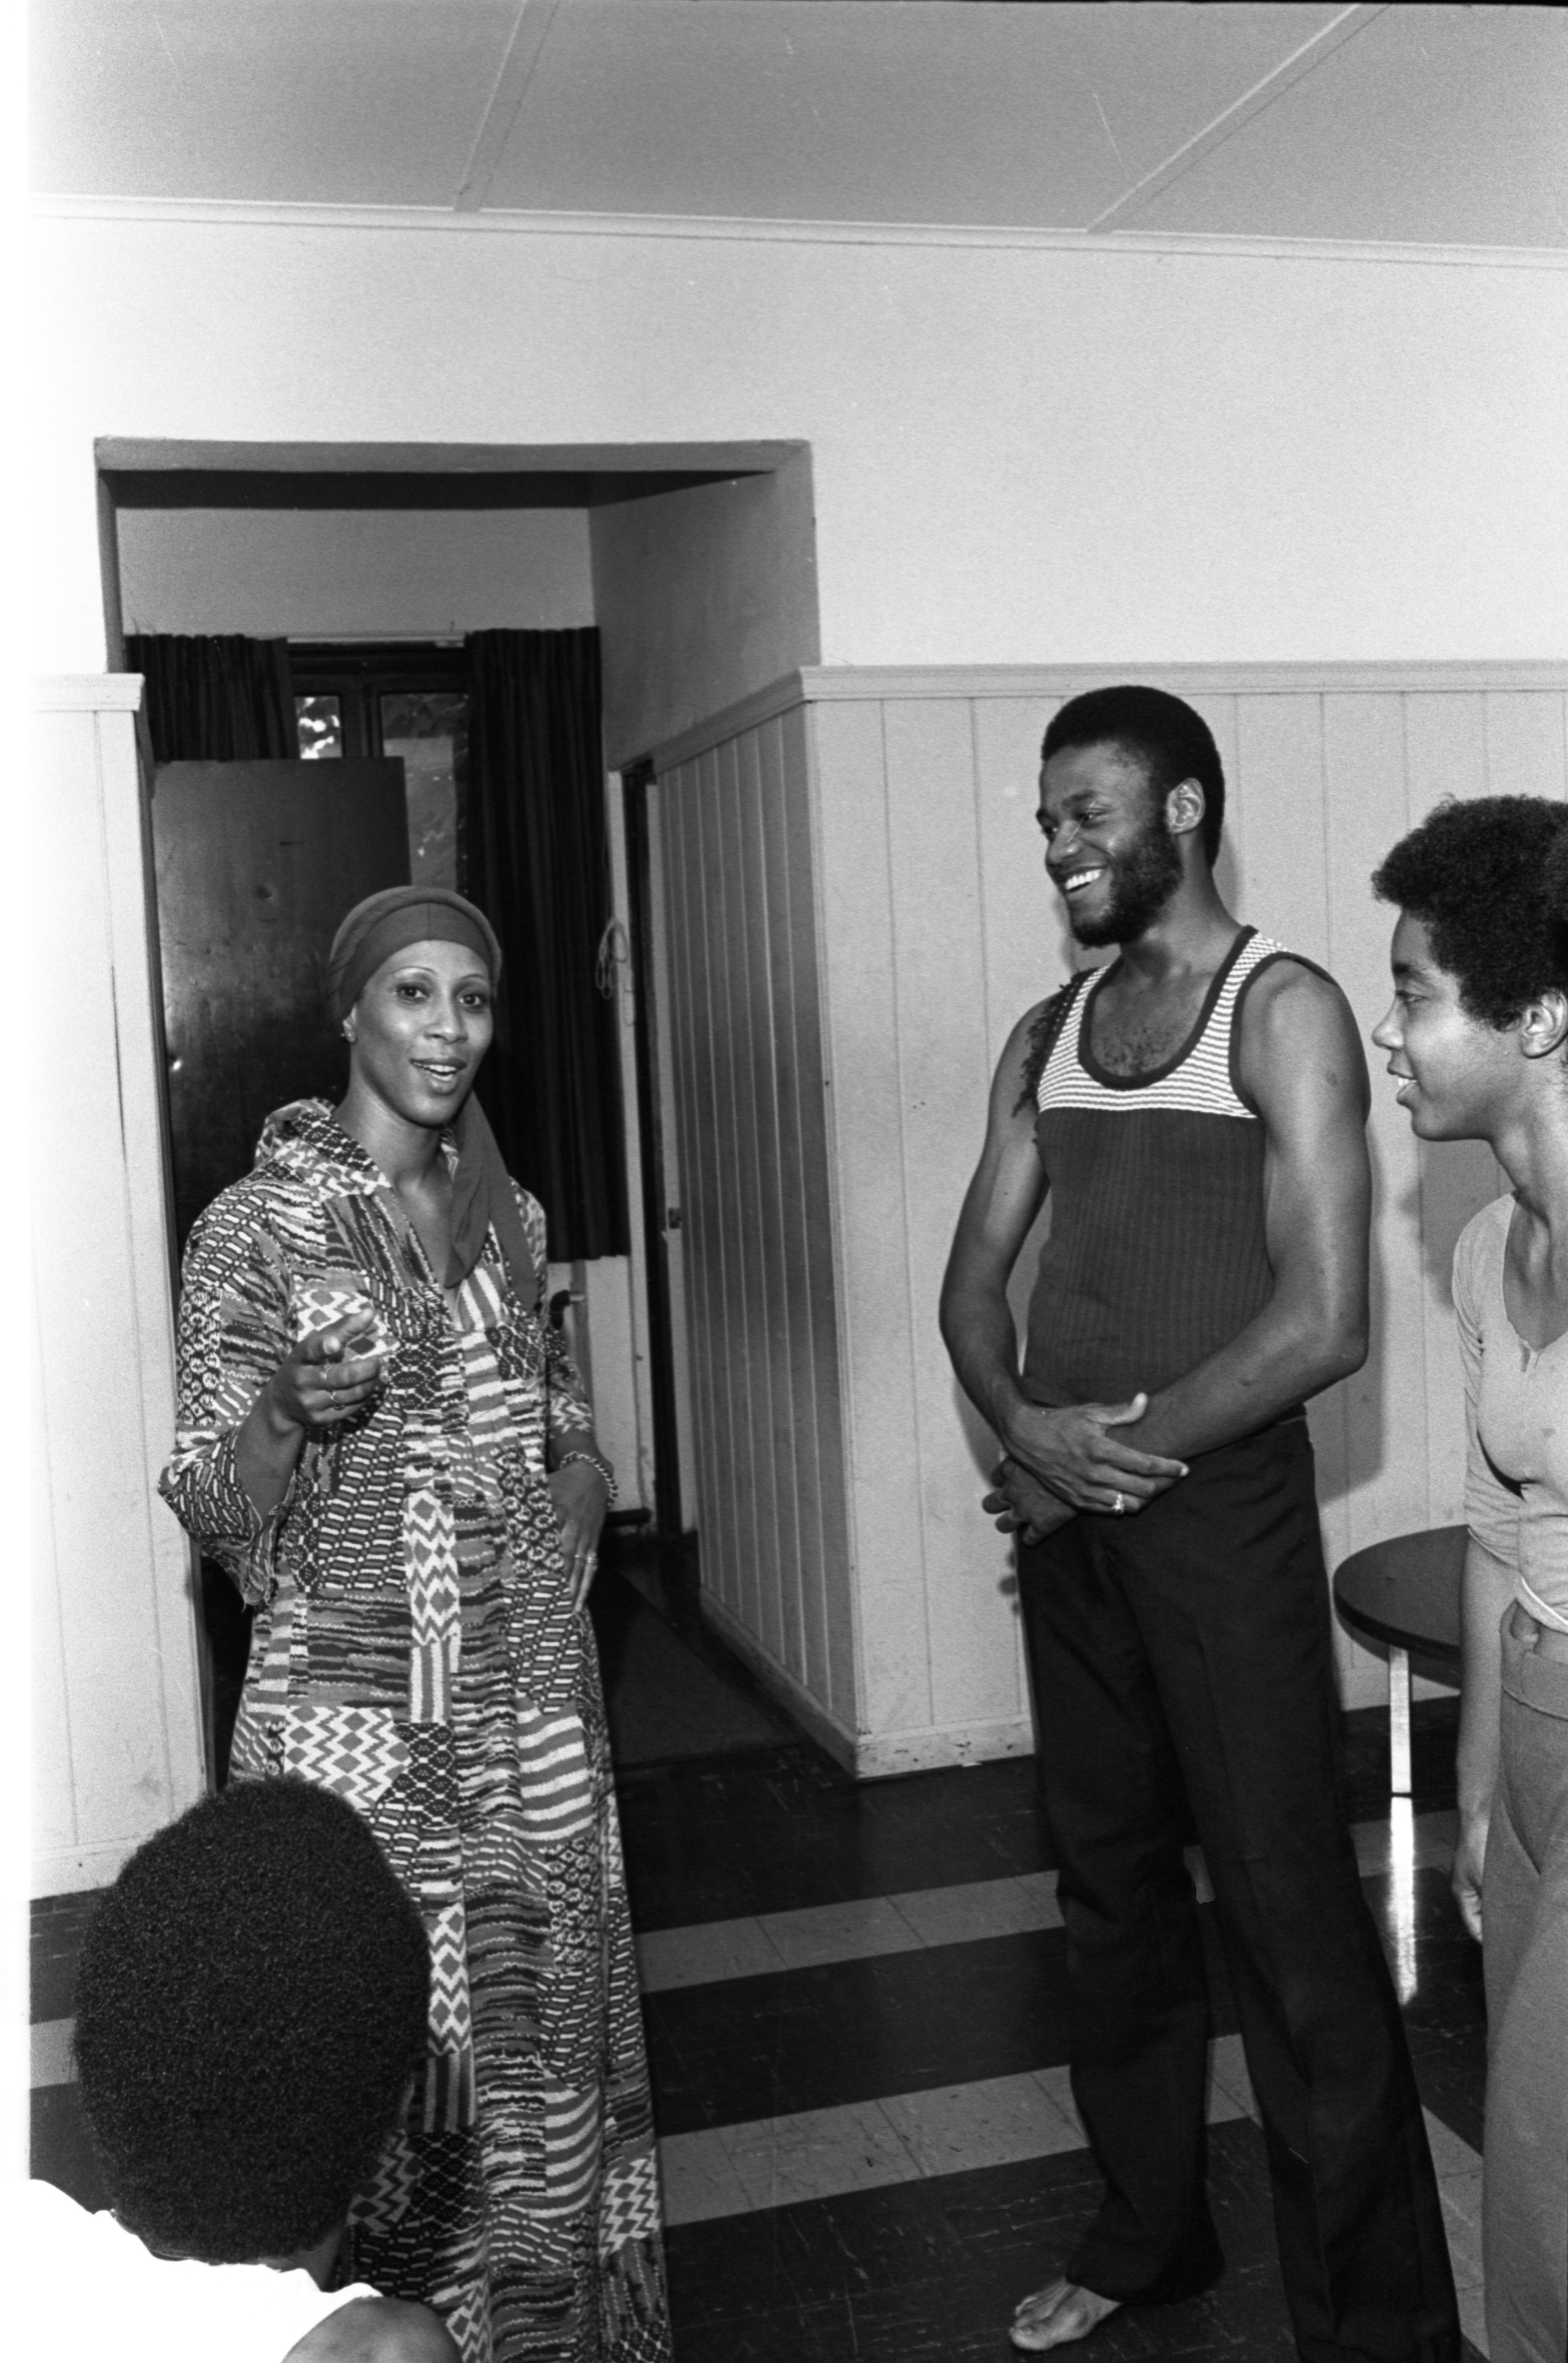 Lois Owens Talks To Members Of The Trotter House Dance Troupe, August 20, 1976 image